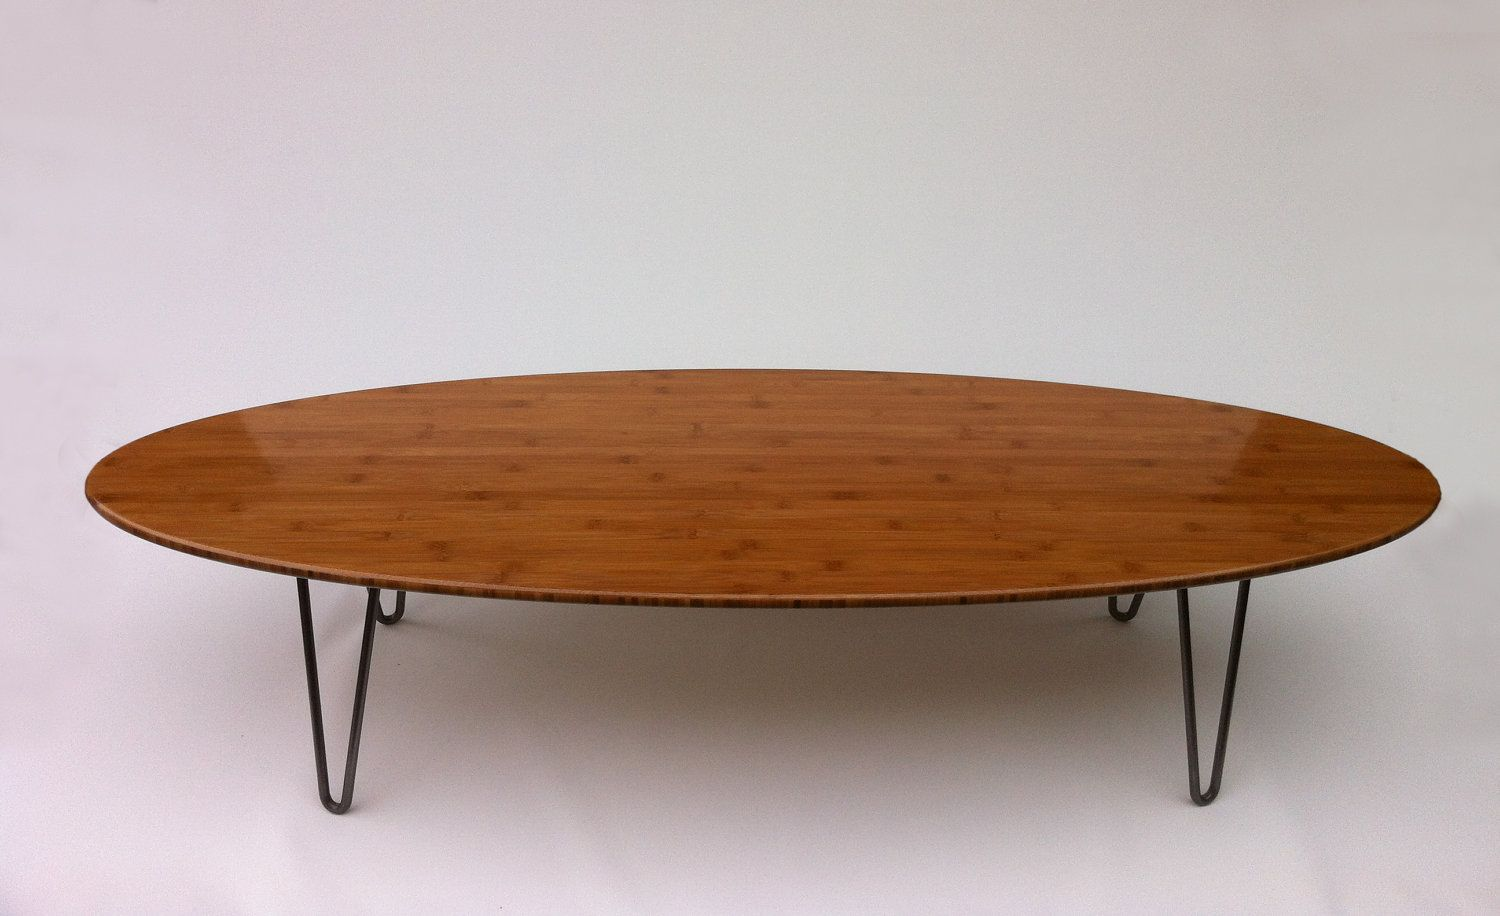 47 Elliptical Mid Century Modern Coffee Table Hairpin Legs Eames Proportion Mid Century Modern Coffee Table Mid Century Coffee Table Surfboard Coffee Table